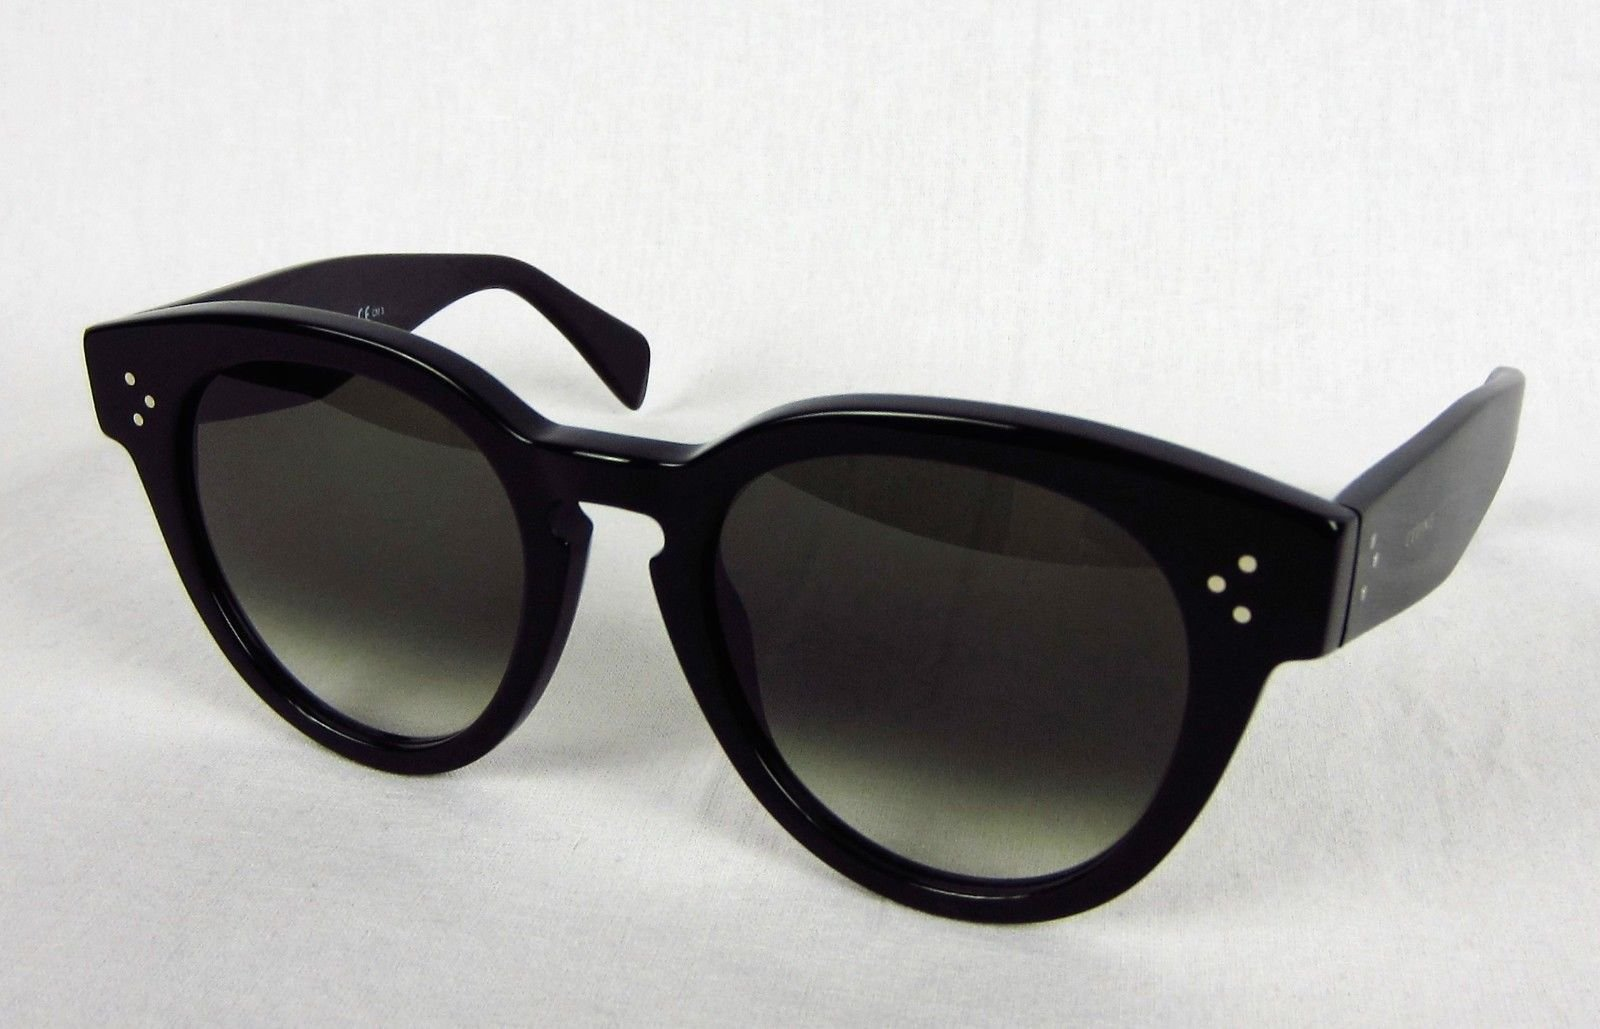 83487f69a73b Celine CL 41049 S Sunglasses 807-XM Black Green Round Thin Preppy Keyhole  52mm